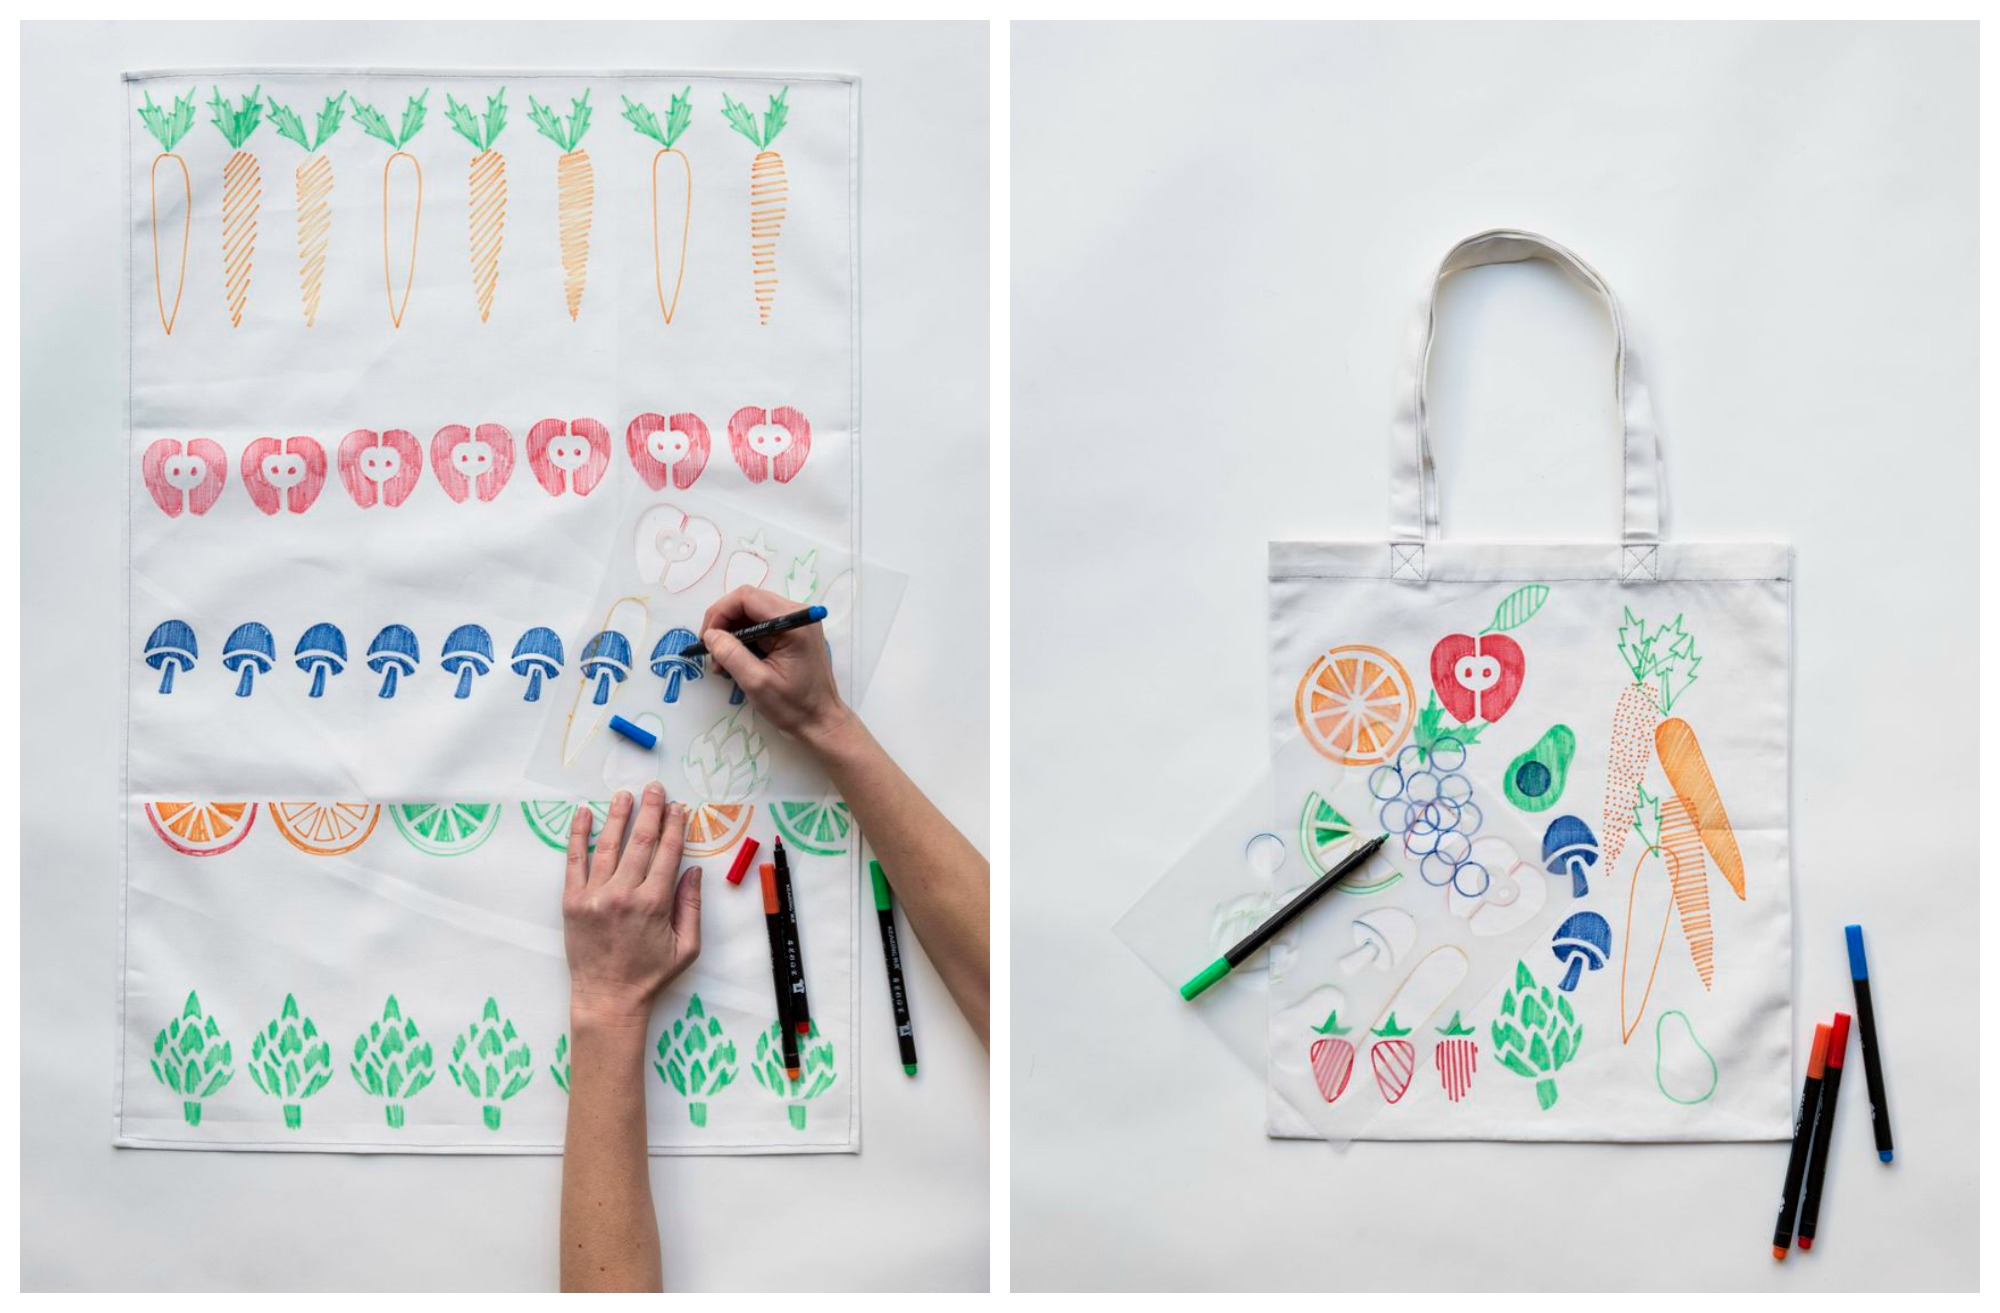 Cool stencils for kids that make crafts you'll actually want to keep.